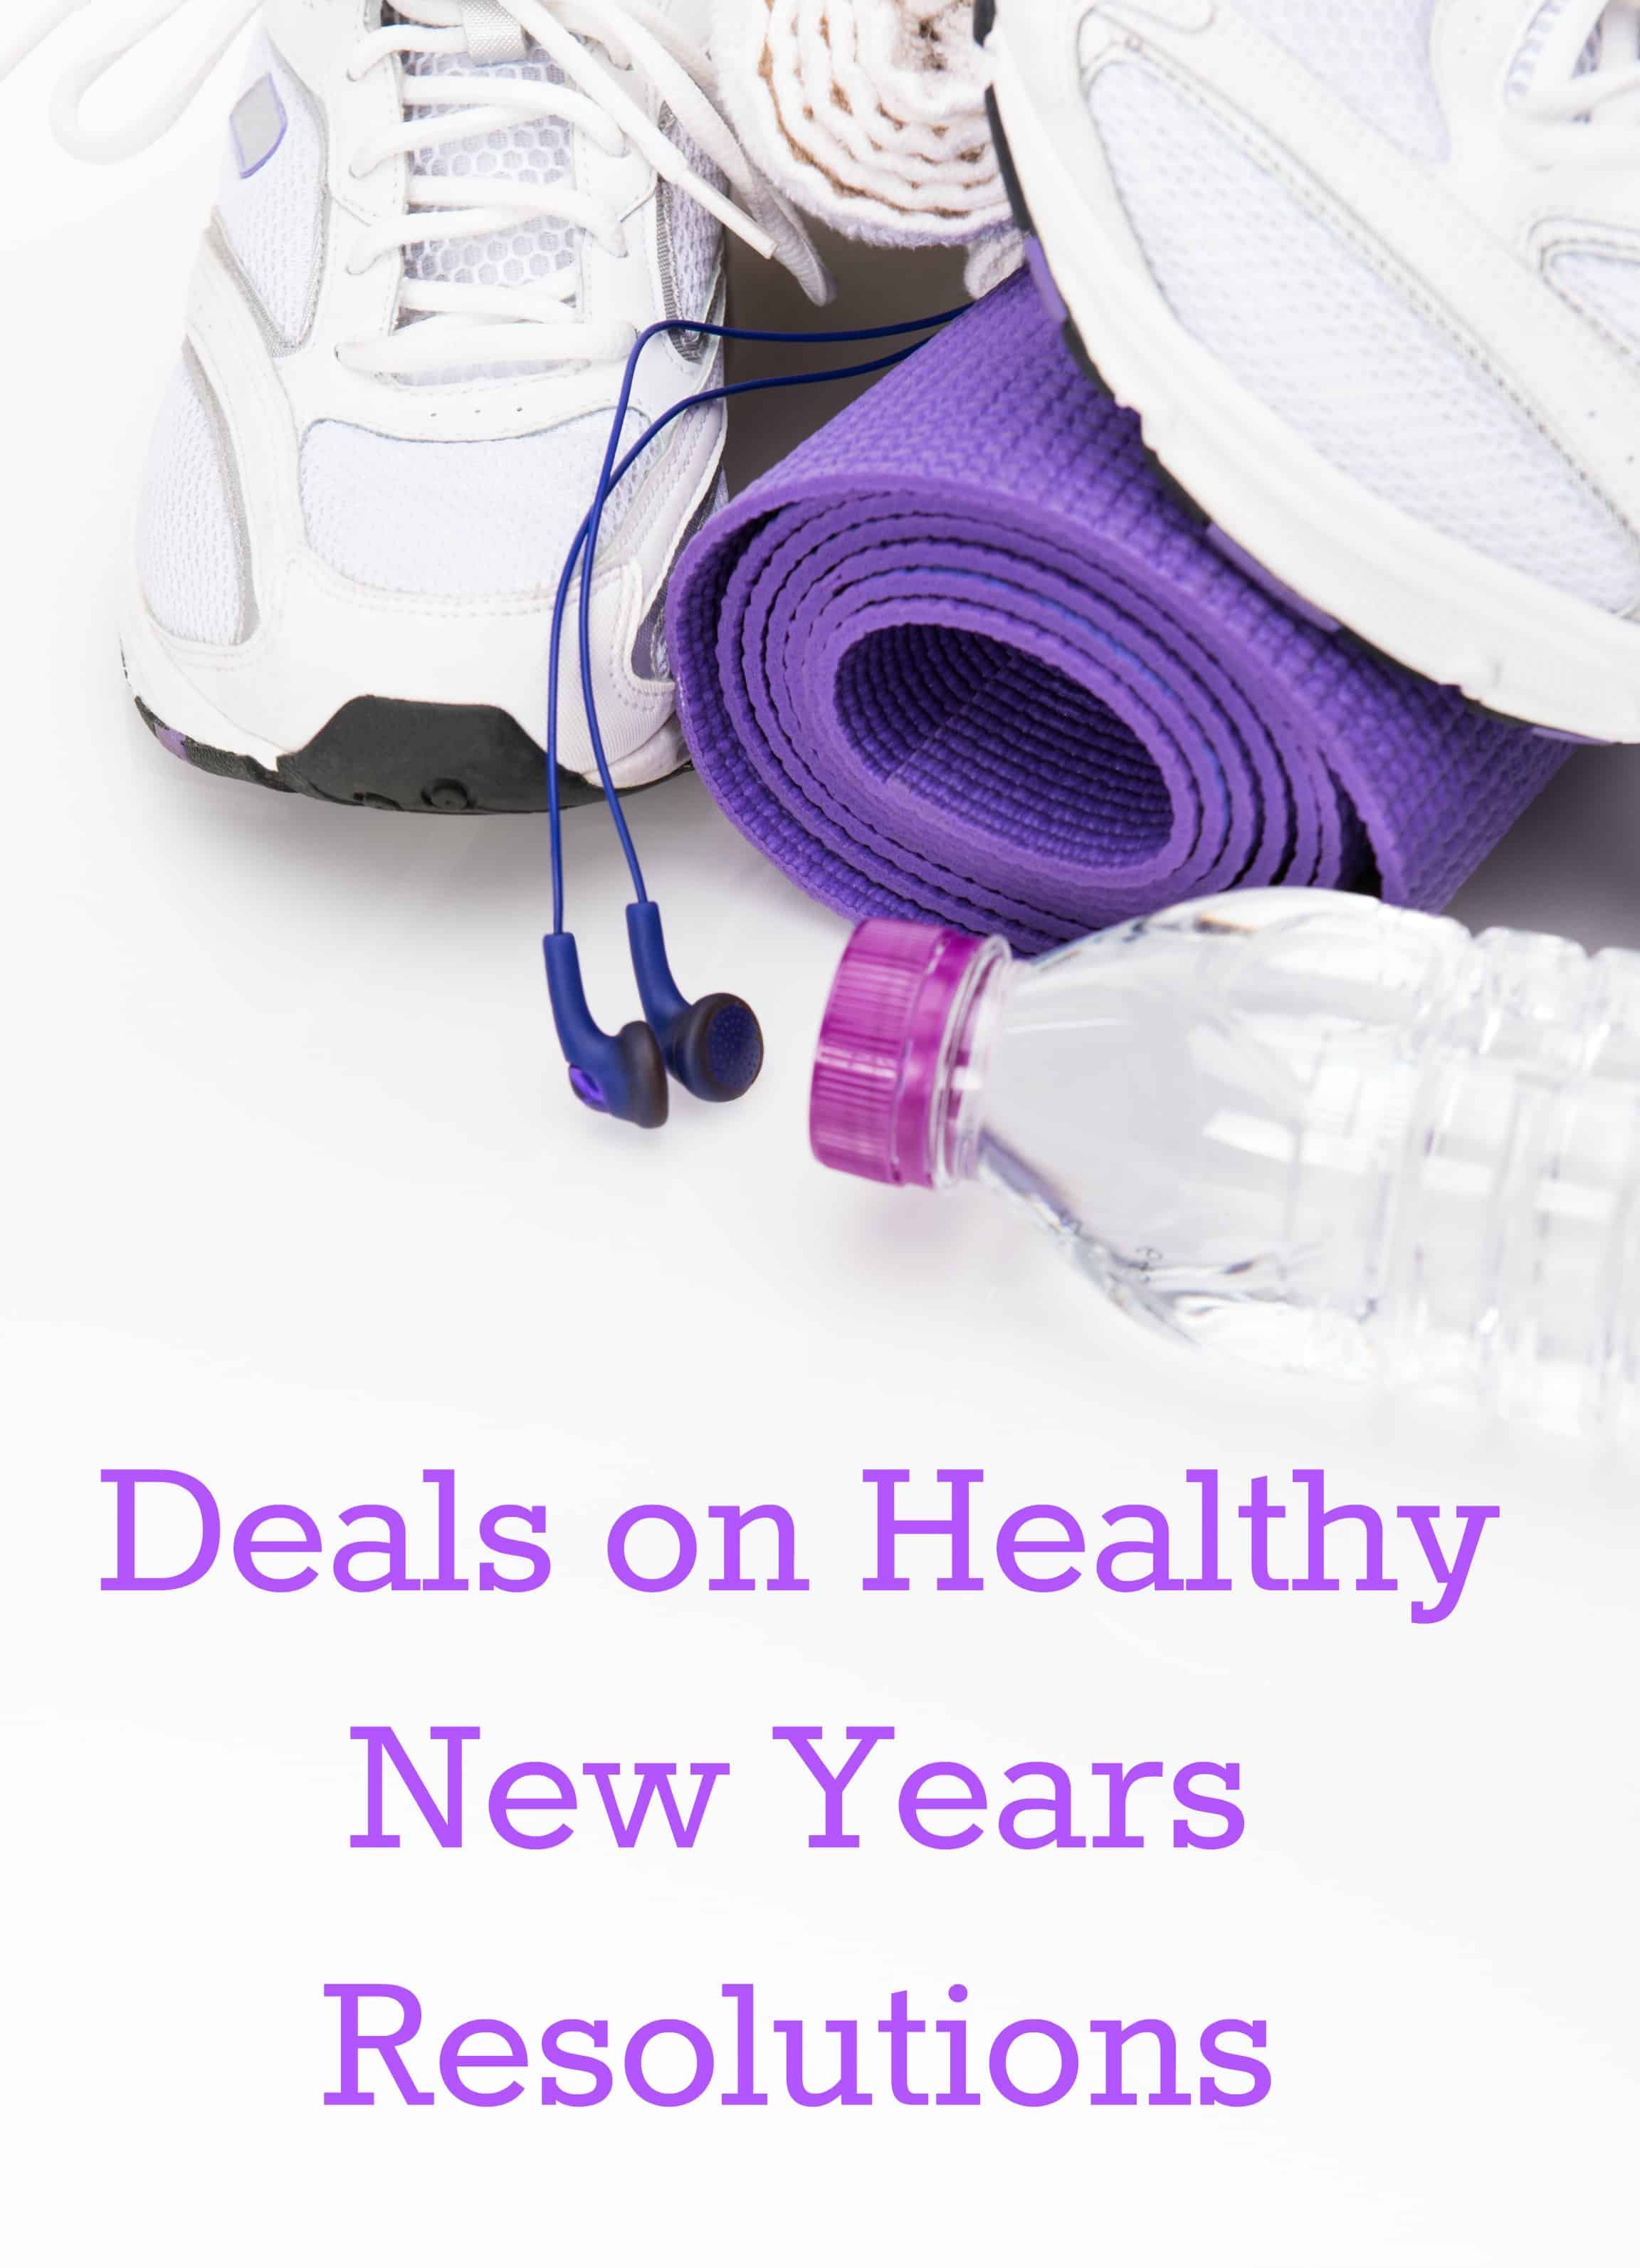 Deals on Healthy New Years Resolutions